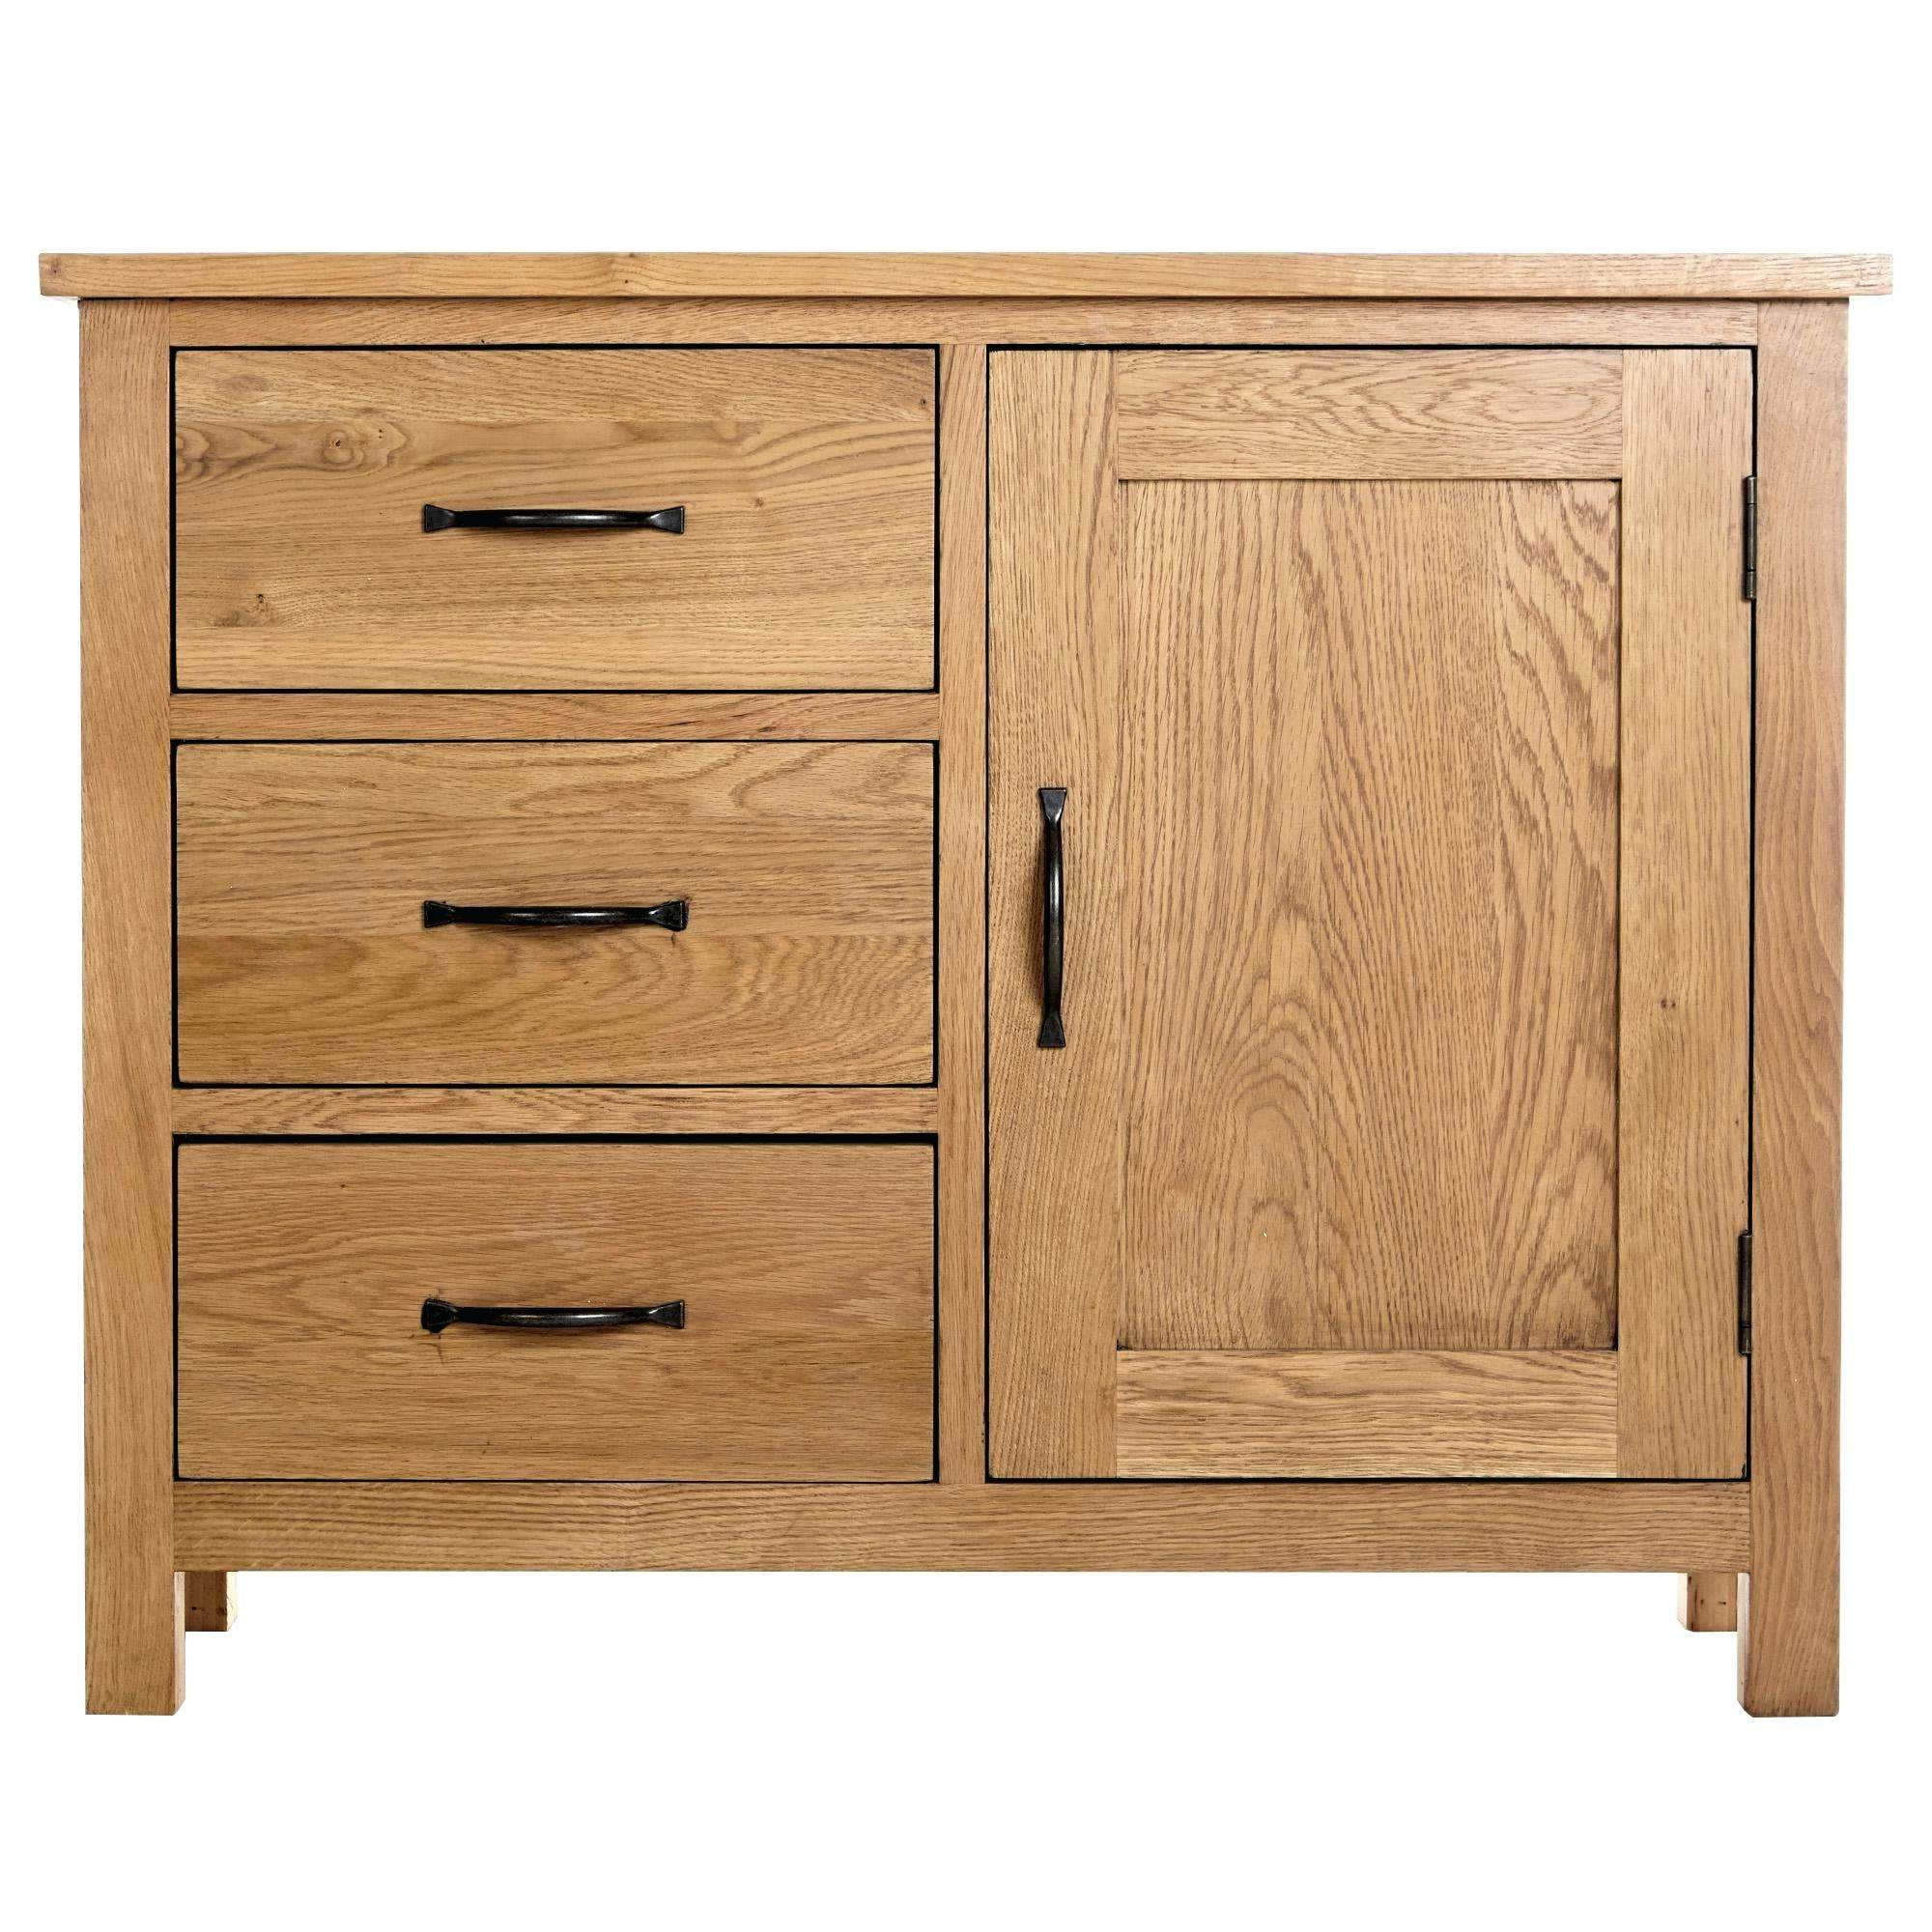 Wooden Sideboards Oak Sideboards Uk Only – Roborob (View 20 of 20)